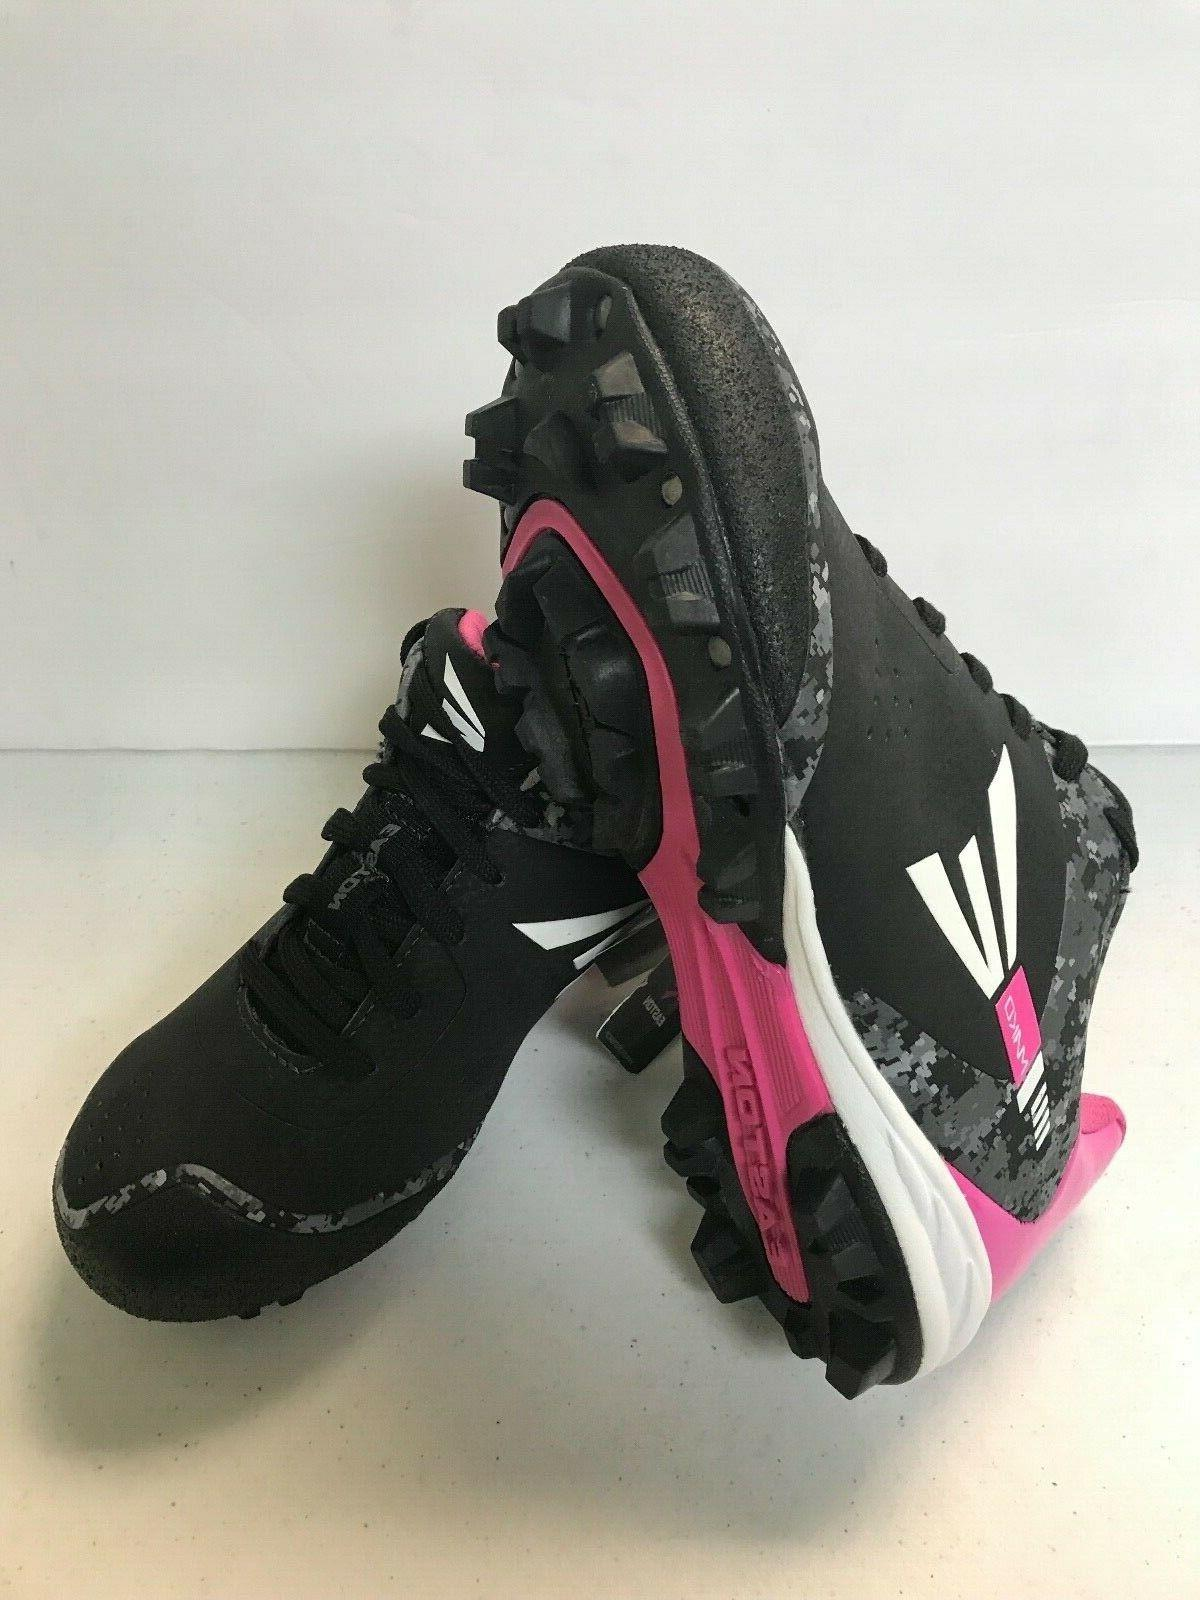 GIRLS EASTON, BLACK AND PINK, SIZES 3Y,